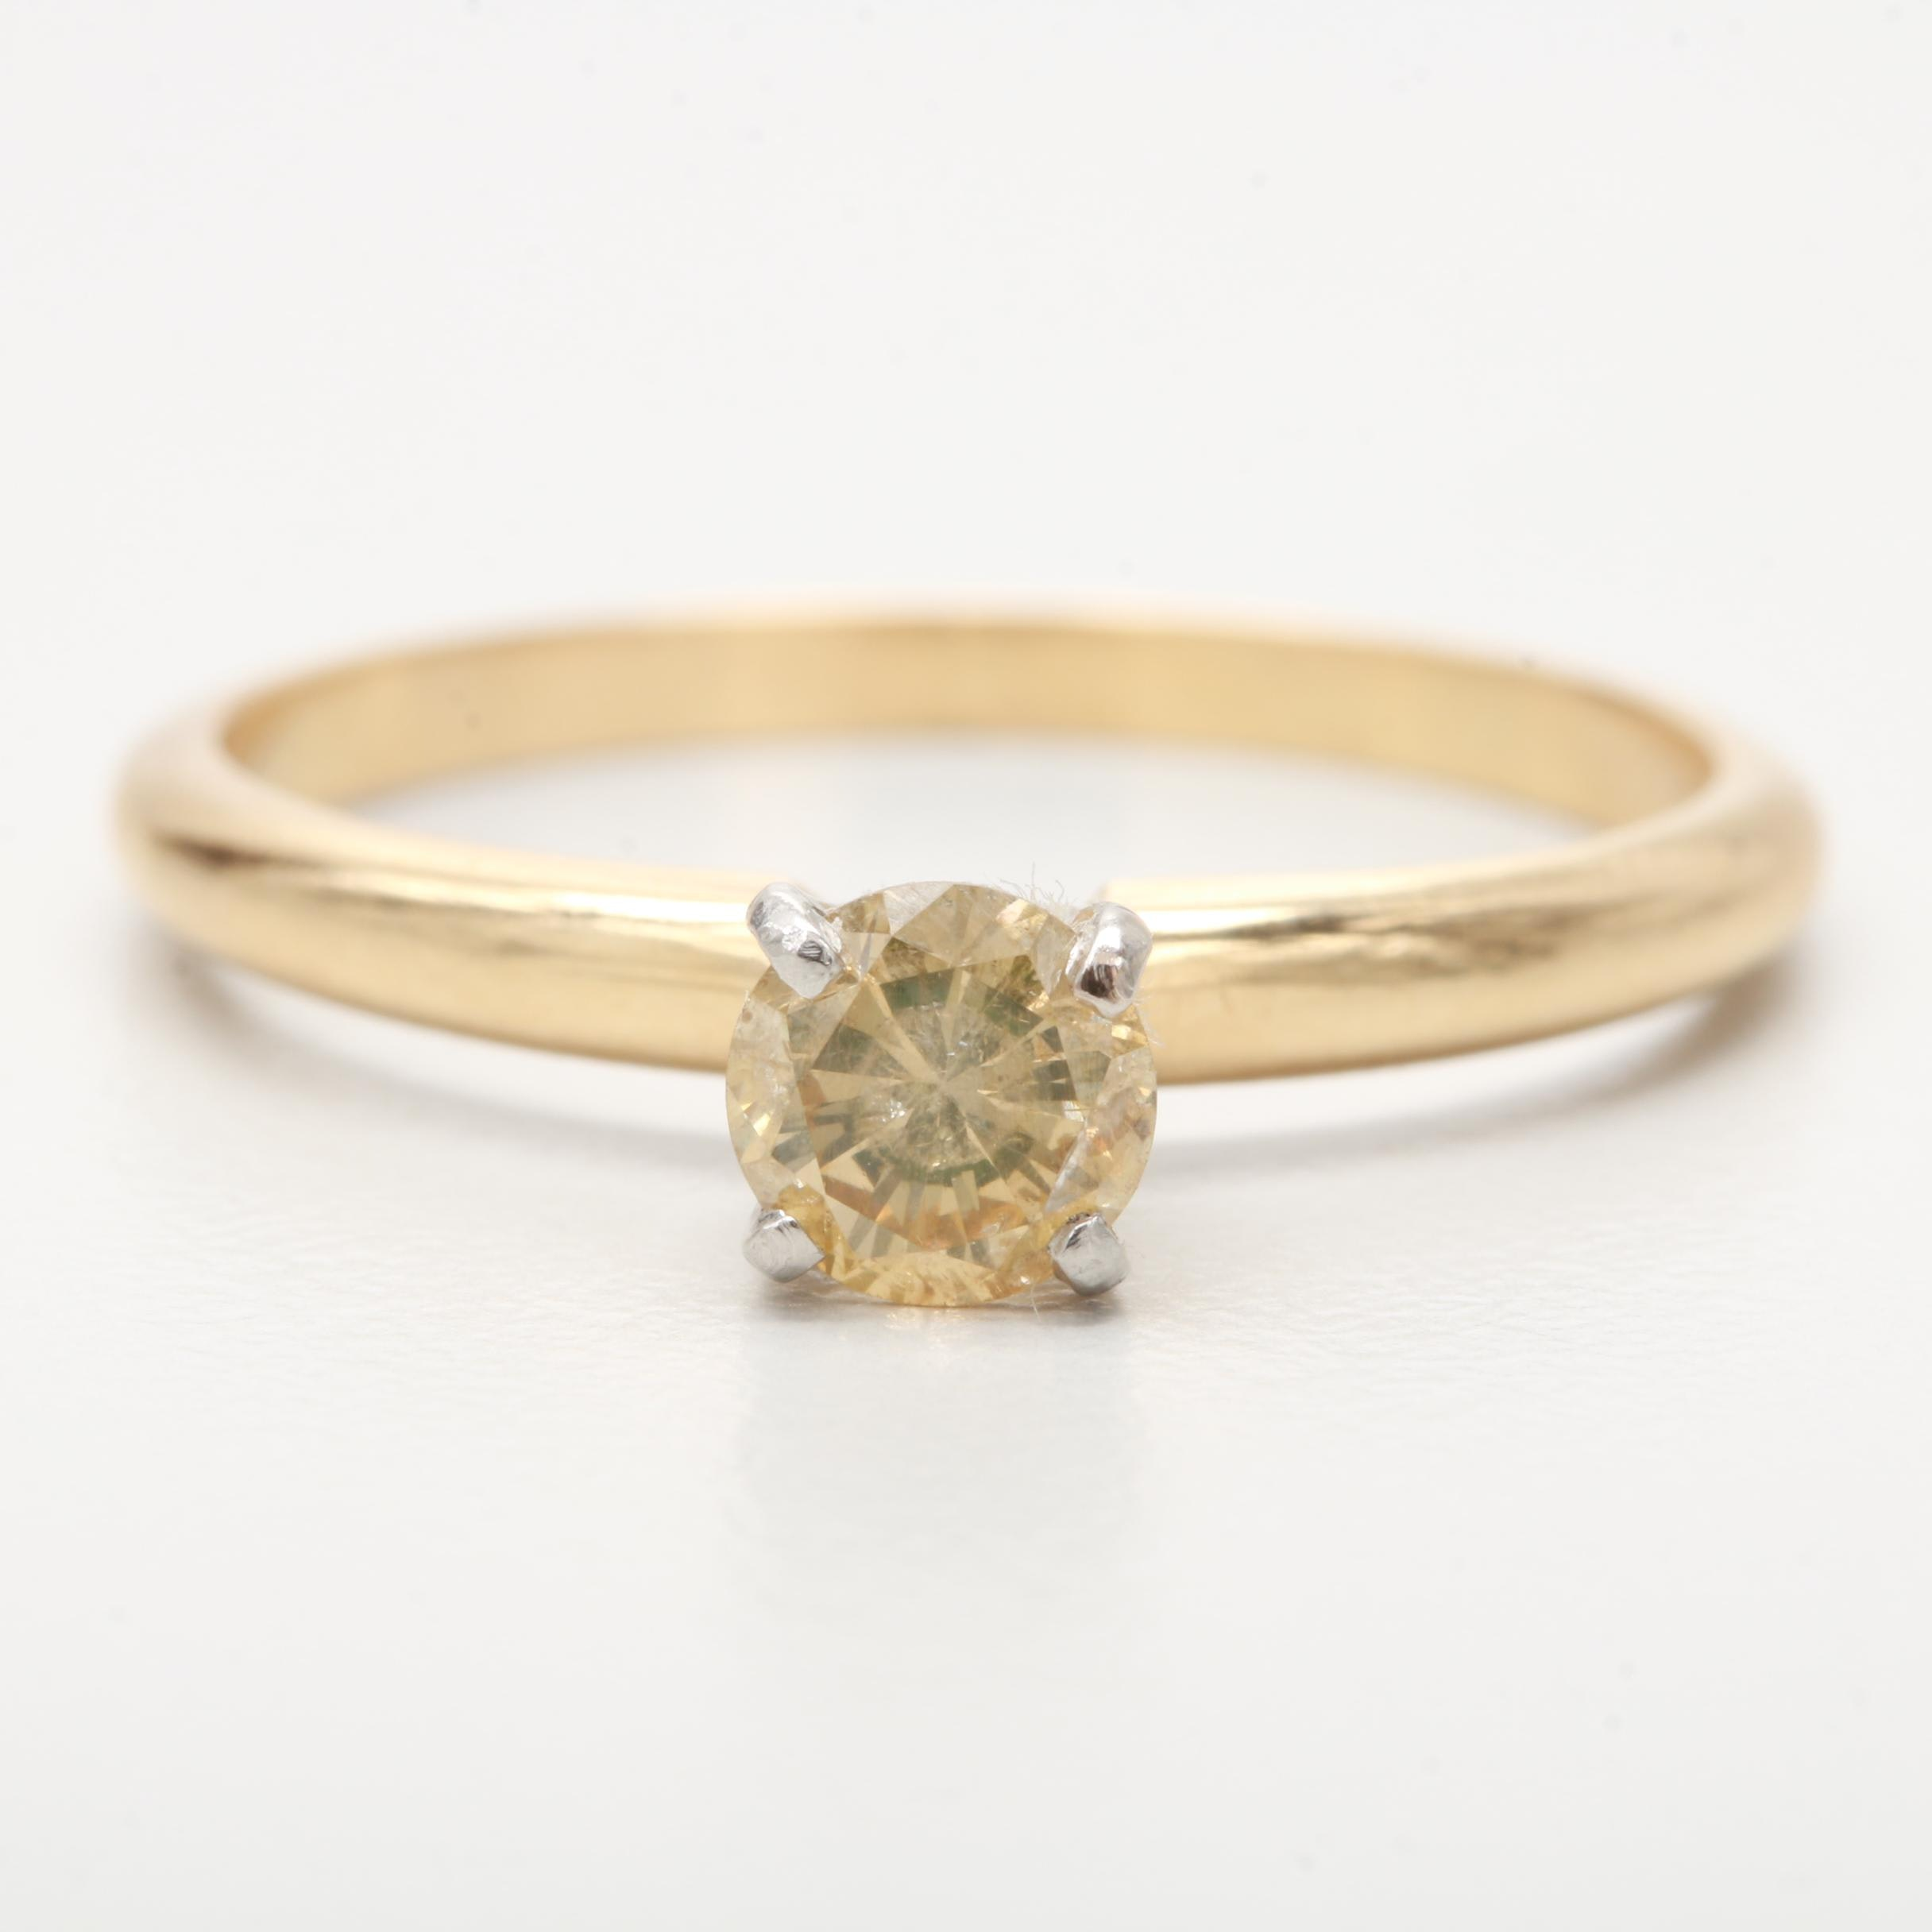 18K Yellow Gold and Platinum Yellow Diamond Ring